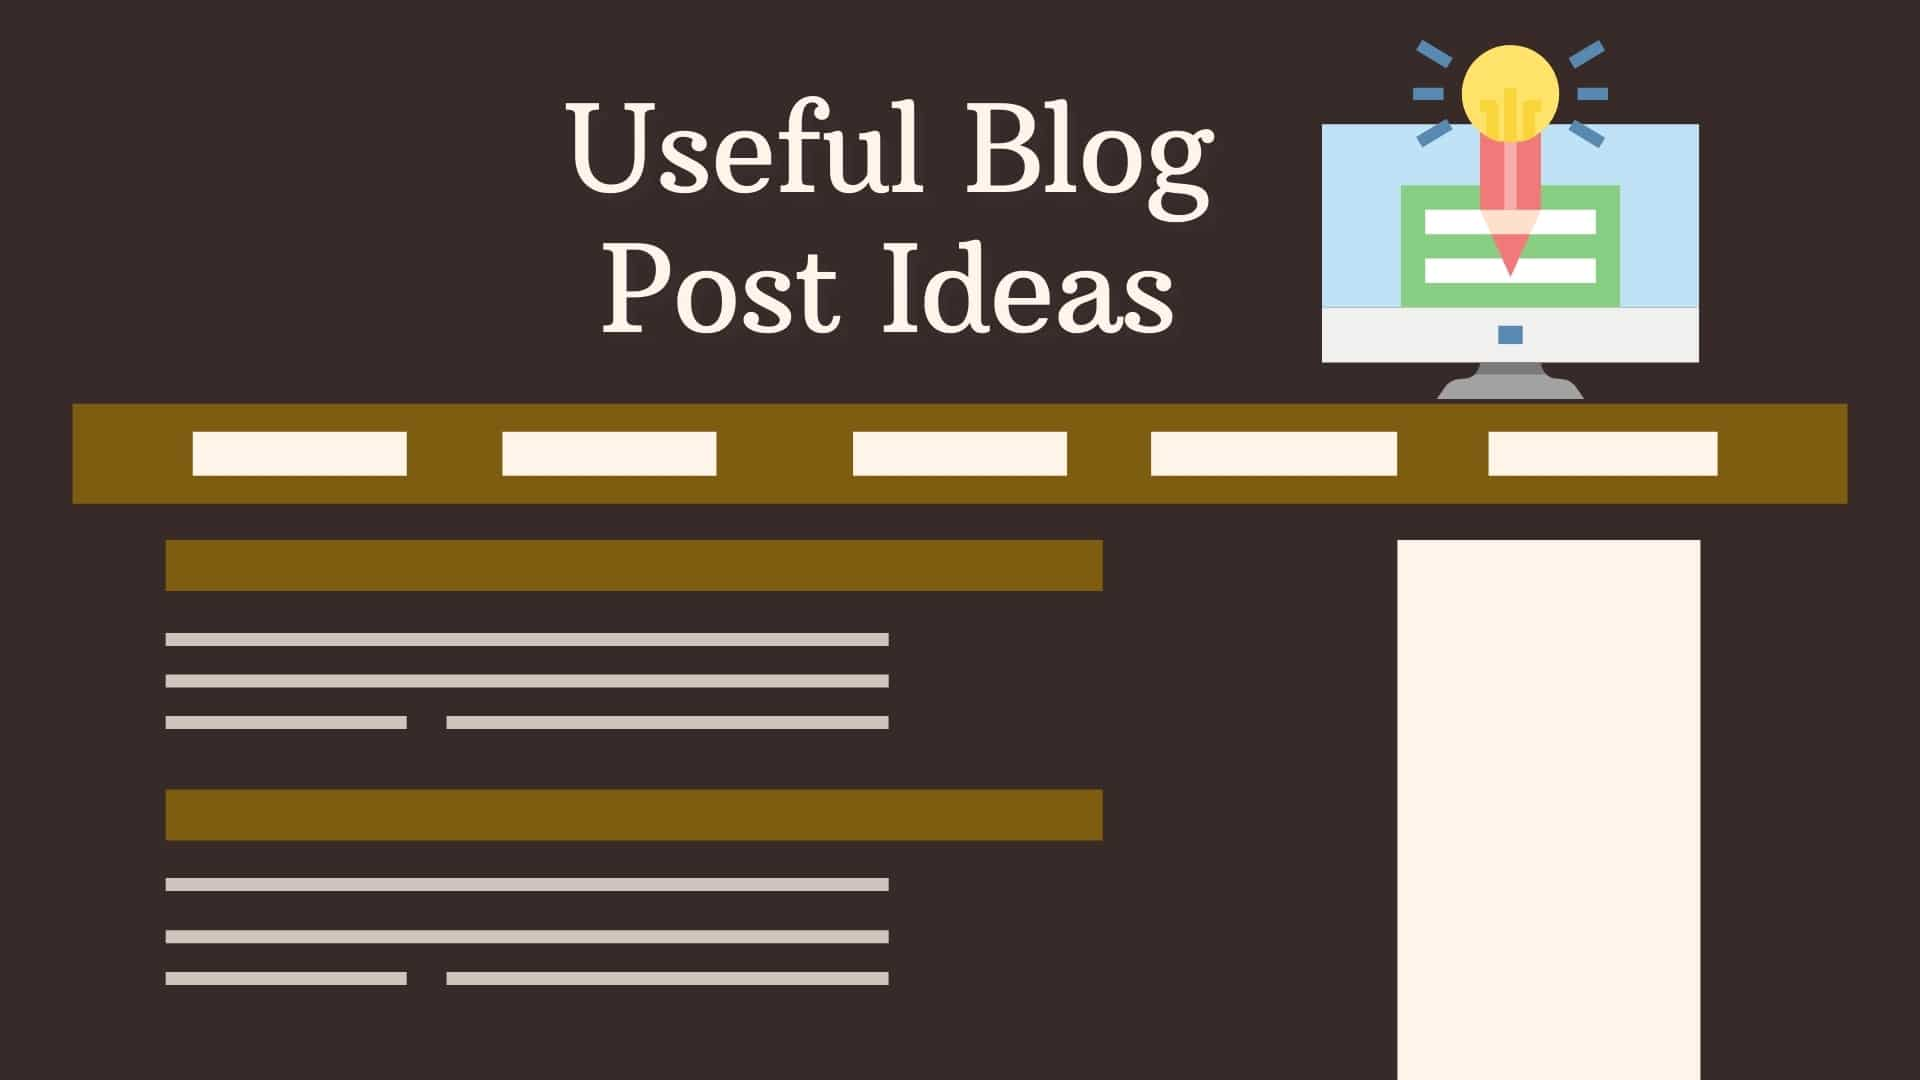 Useful Blog Post Topic Ideas - Find Blog Topic Ideas and Post Ideas to Write About